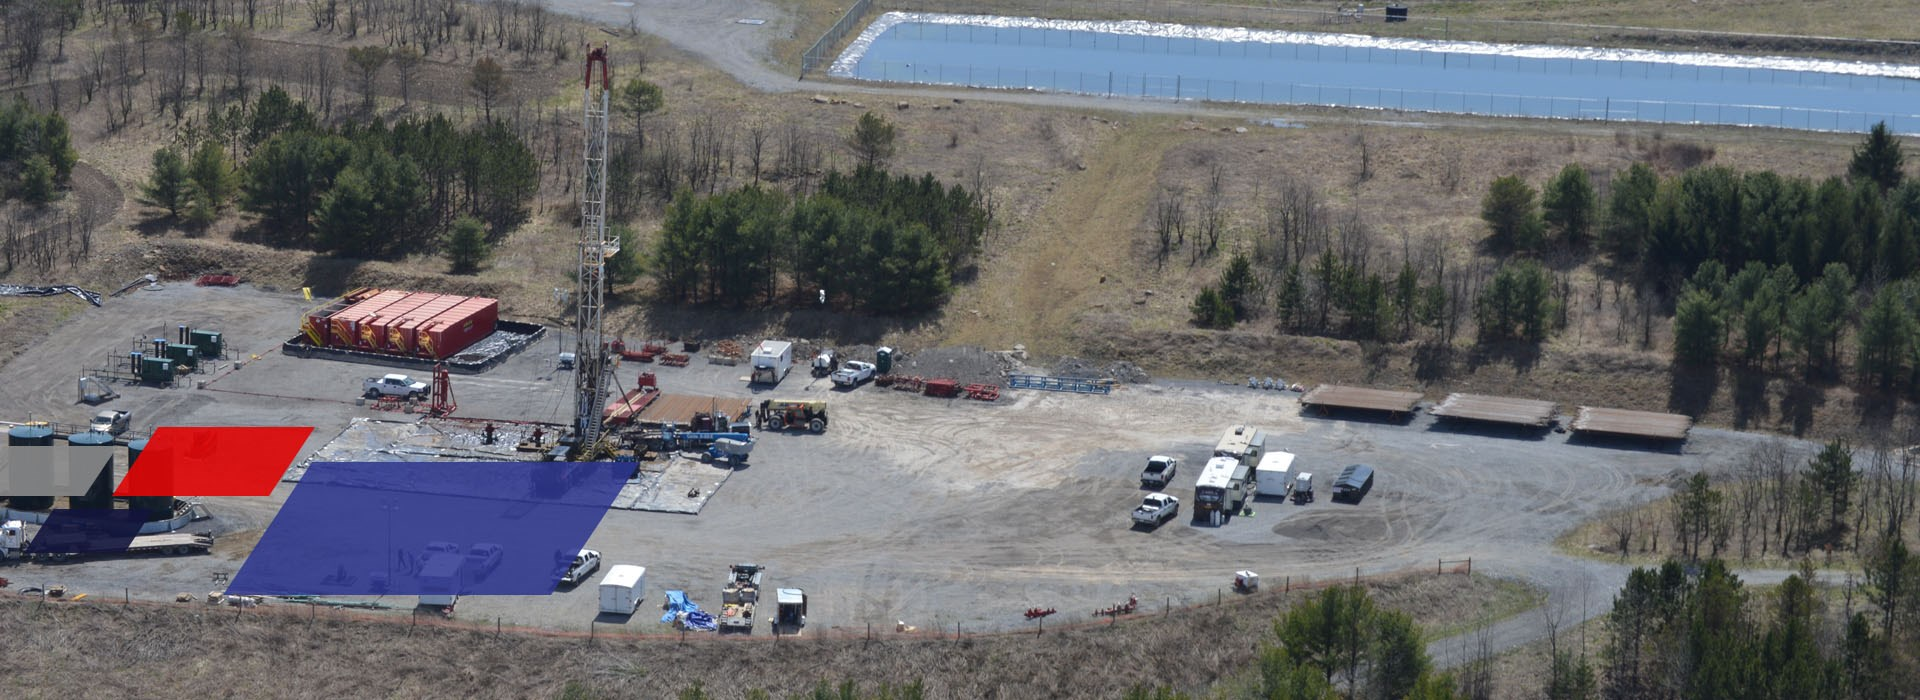 Support Services for the Marcellus Shale Industry